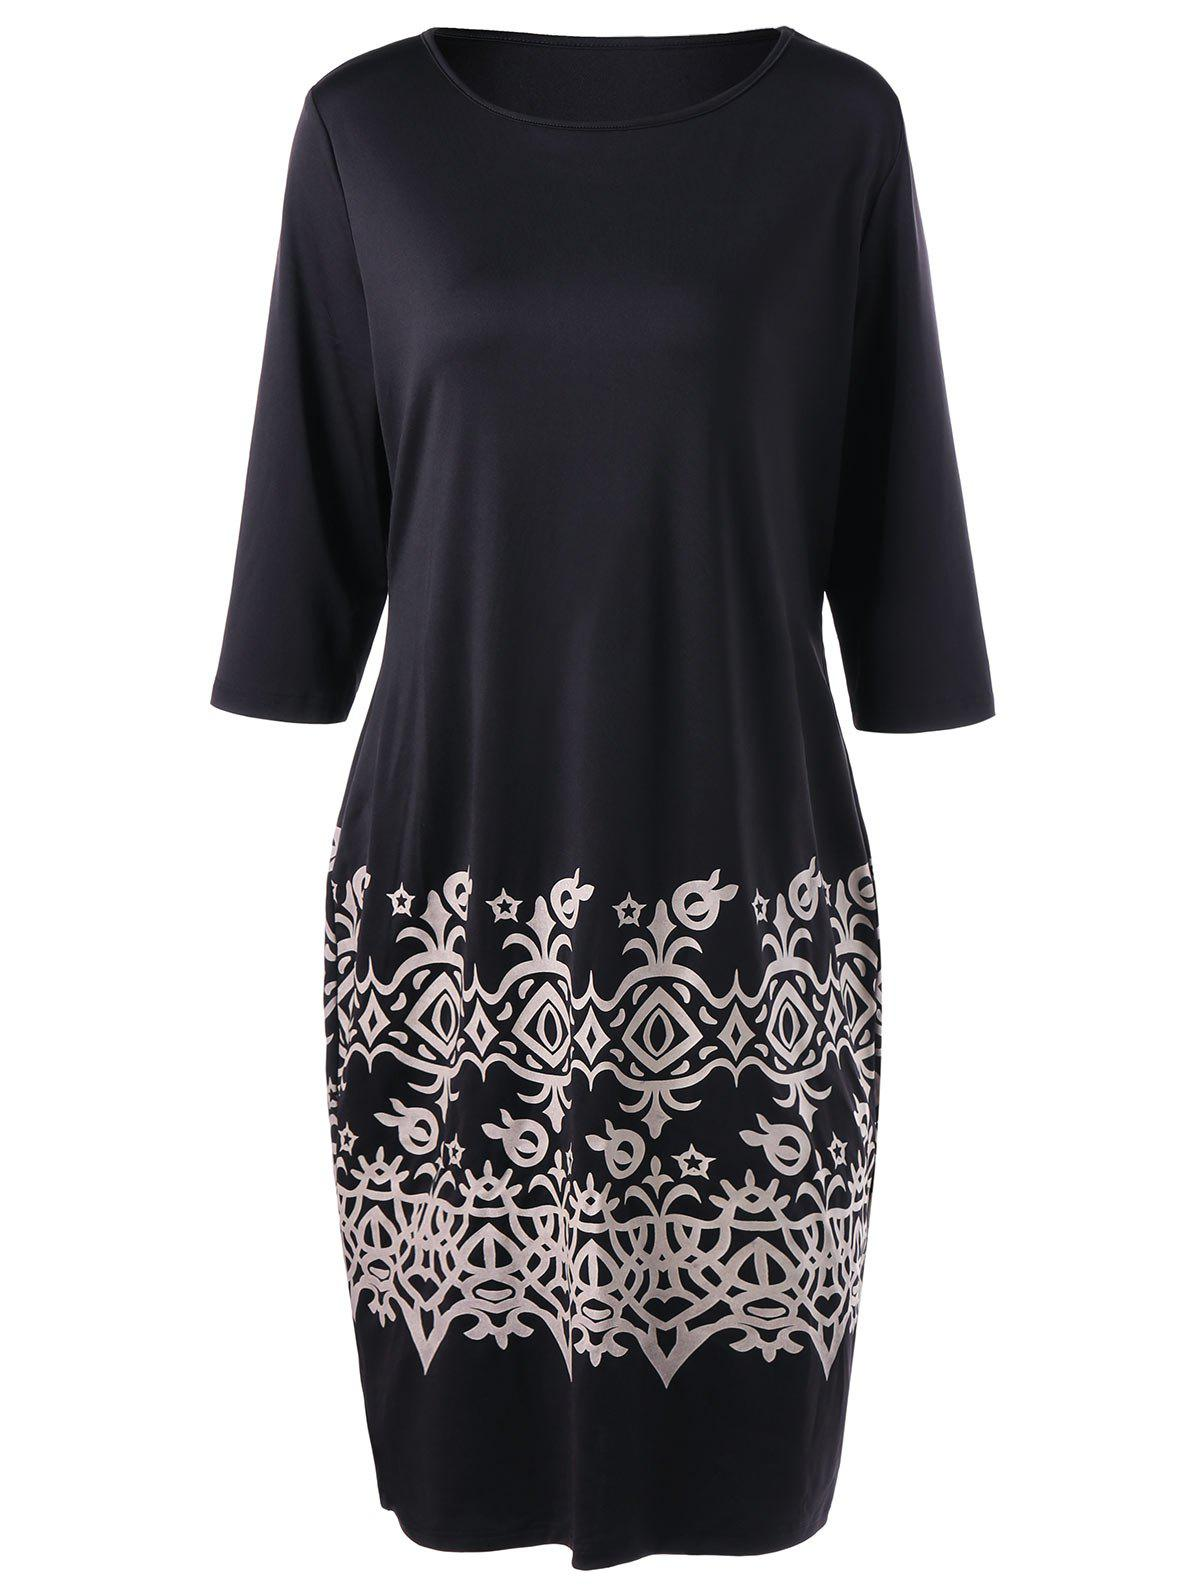 Plus Size Bandana Floral Slim DressWOMEN<br><br>Size: XL; Color: BLACK; Style: Brief; Material: Polyester,Spandex; Silhouette: Sheath; Dresses Length: Knee-Length; Neckline: Round Collar; Sleeve Length: Half Sleeves; Pattern Type: Print; With Belt: No; Season: Fall,Spring; Weight: 0.3200kg; Package Contents: 1 x Dress;